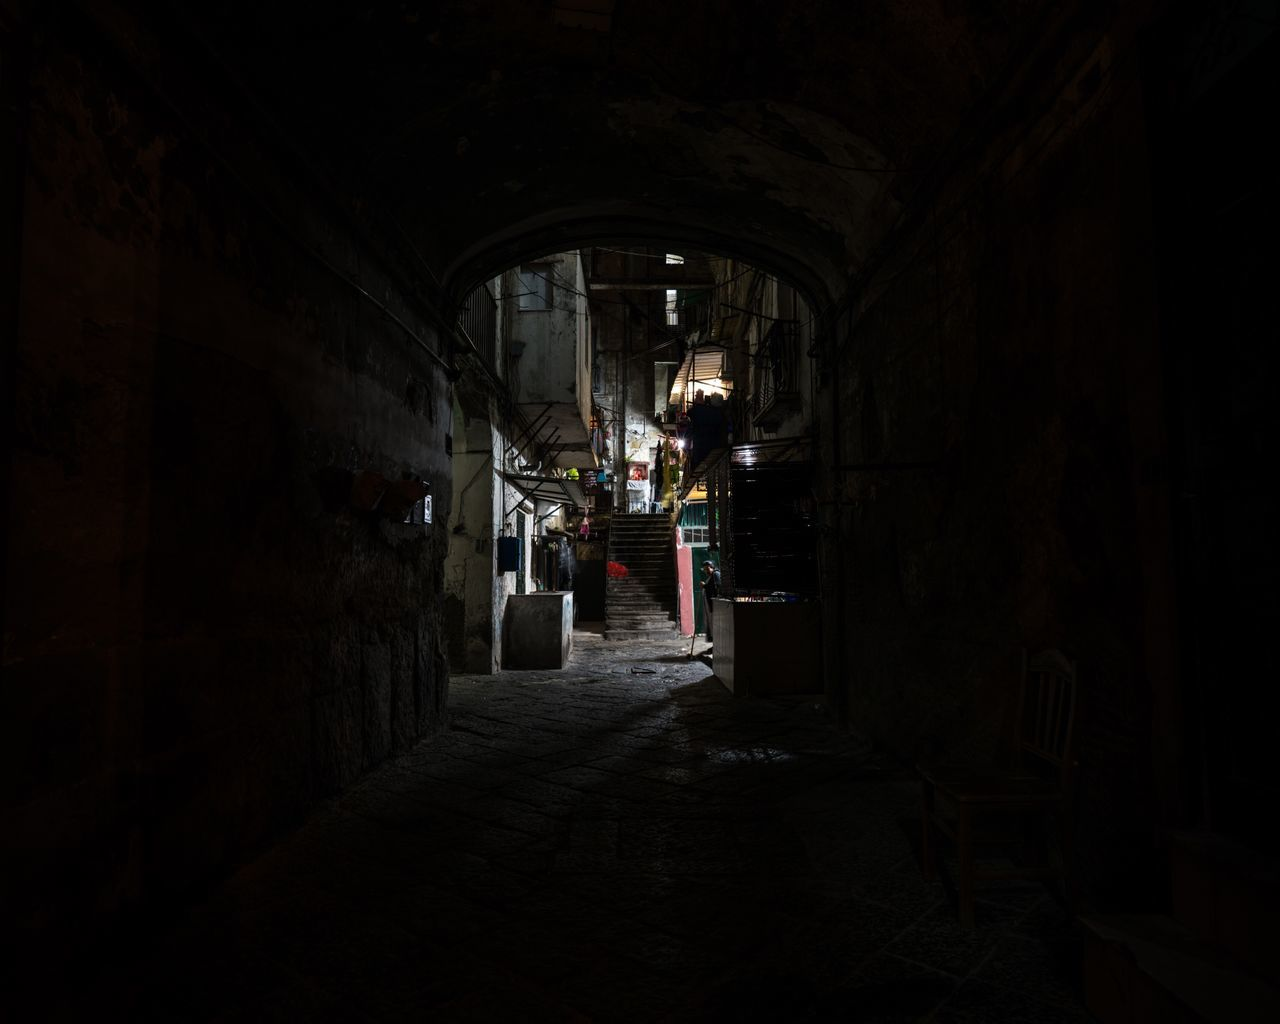 Out of the Dark. Architecture Night Lights Night Nightphotography Tunnel Vision Tunnel Naples Napoli You Want It Darker Bella Italia Italy Italia Italy❤️ City Dark Dark Photography Darkness And Light Alley